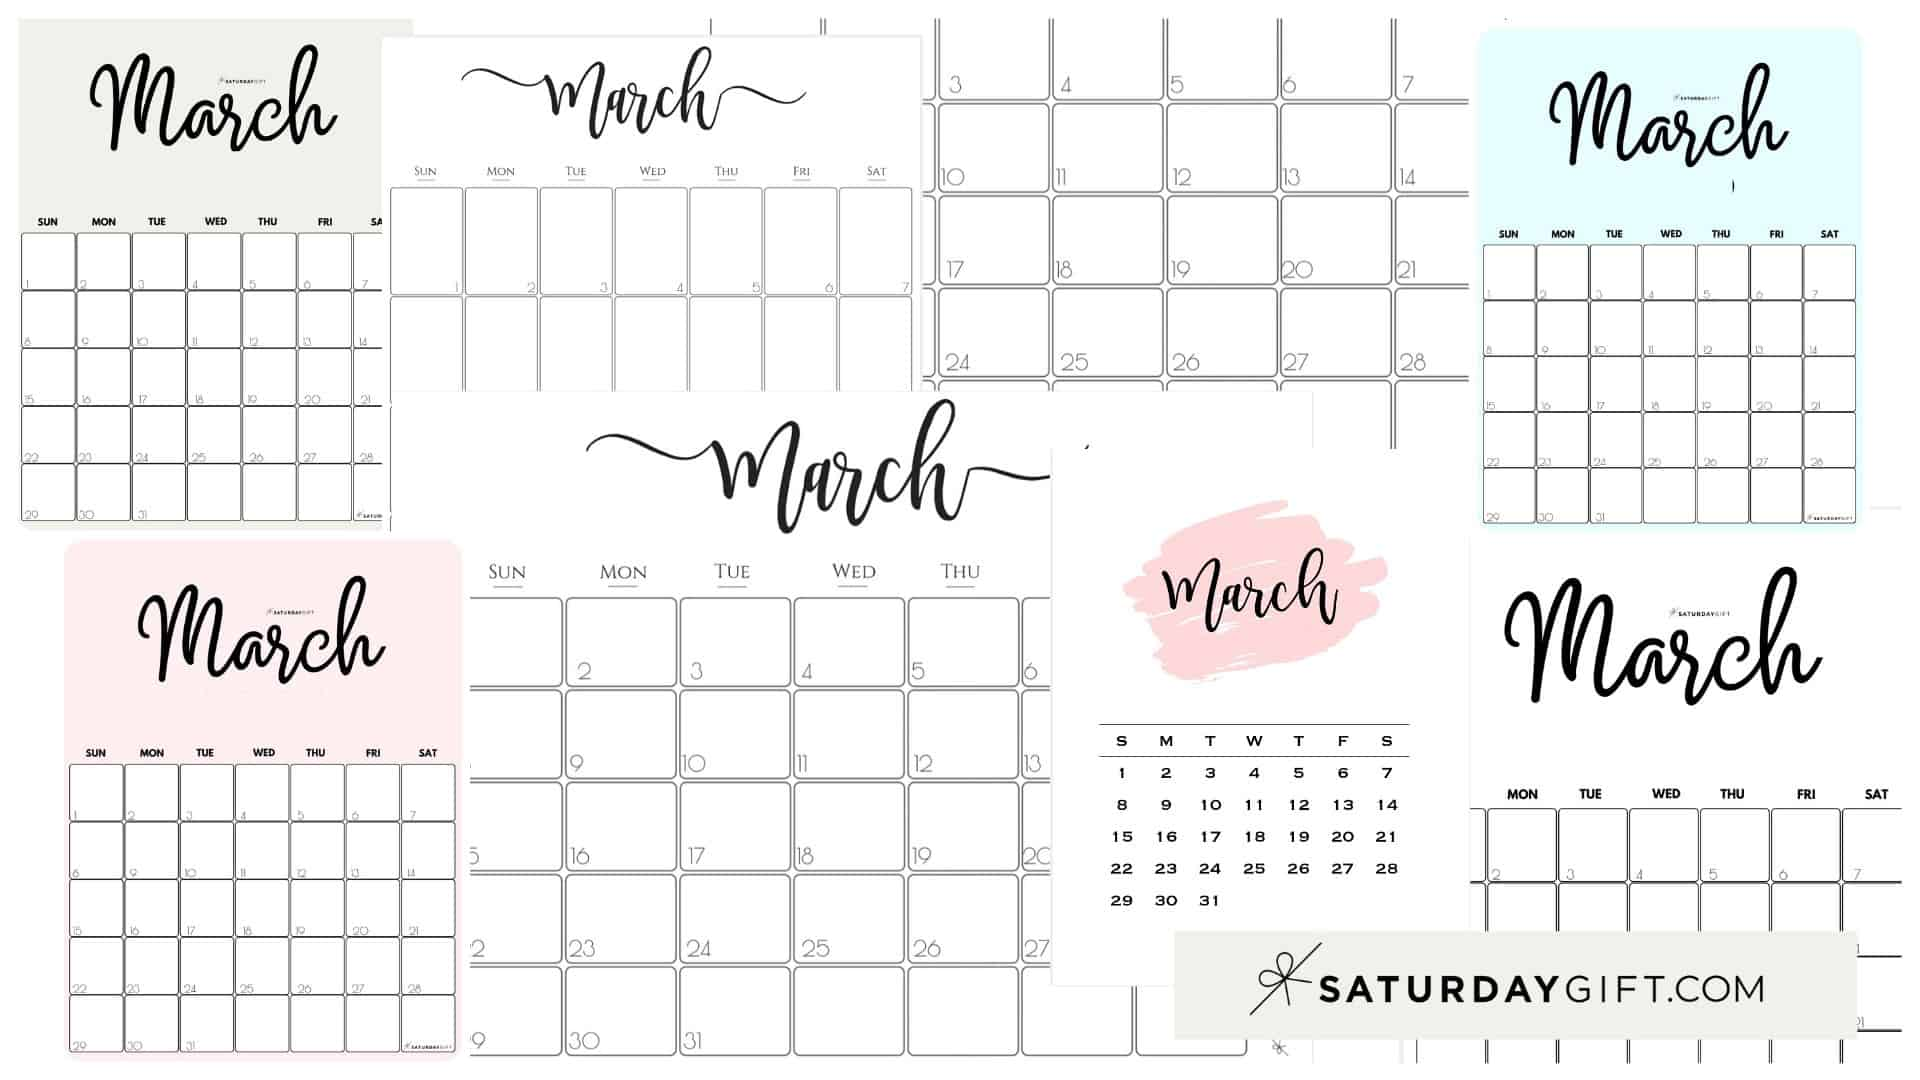 March 2021 Monthly Calendar Cute (& Free!) Printable March 2021 Calendar | SaturdayGift